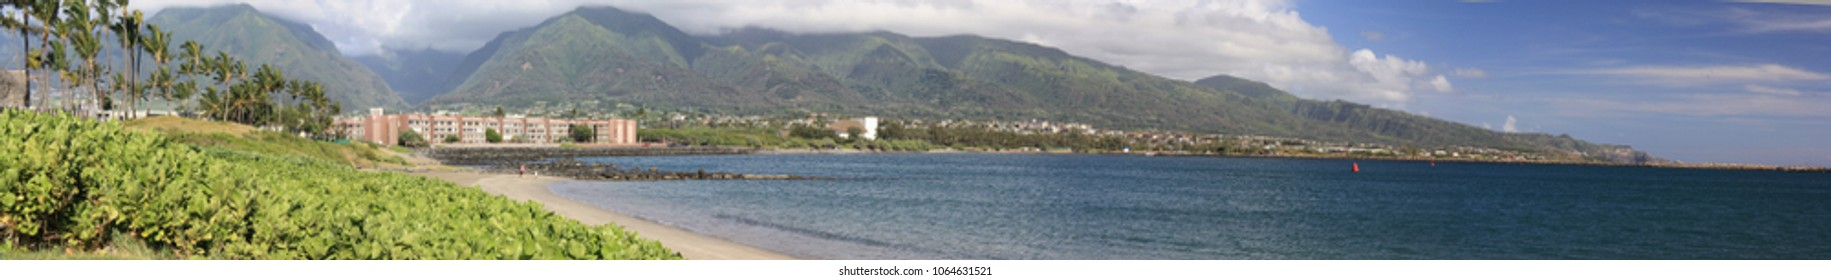 panorama of Kahului Harbor with condos/houses/hotels against a volcano with cloud cover